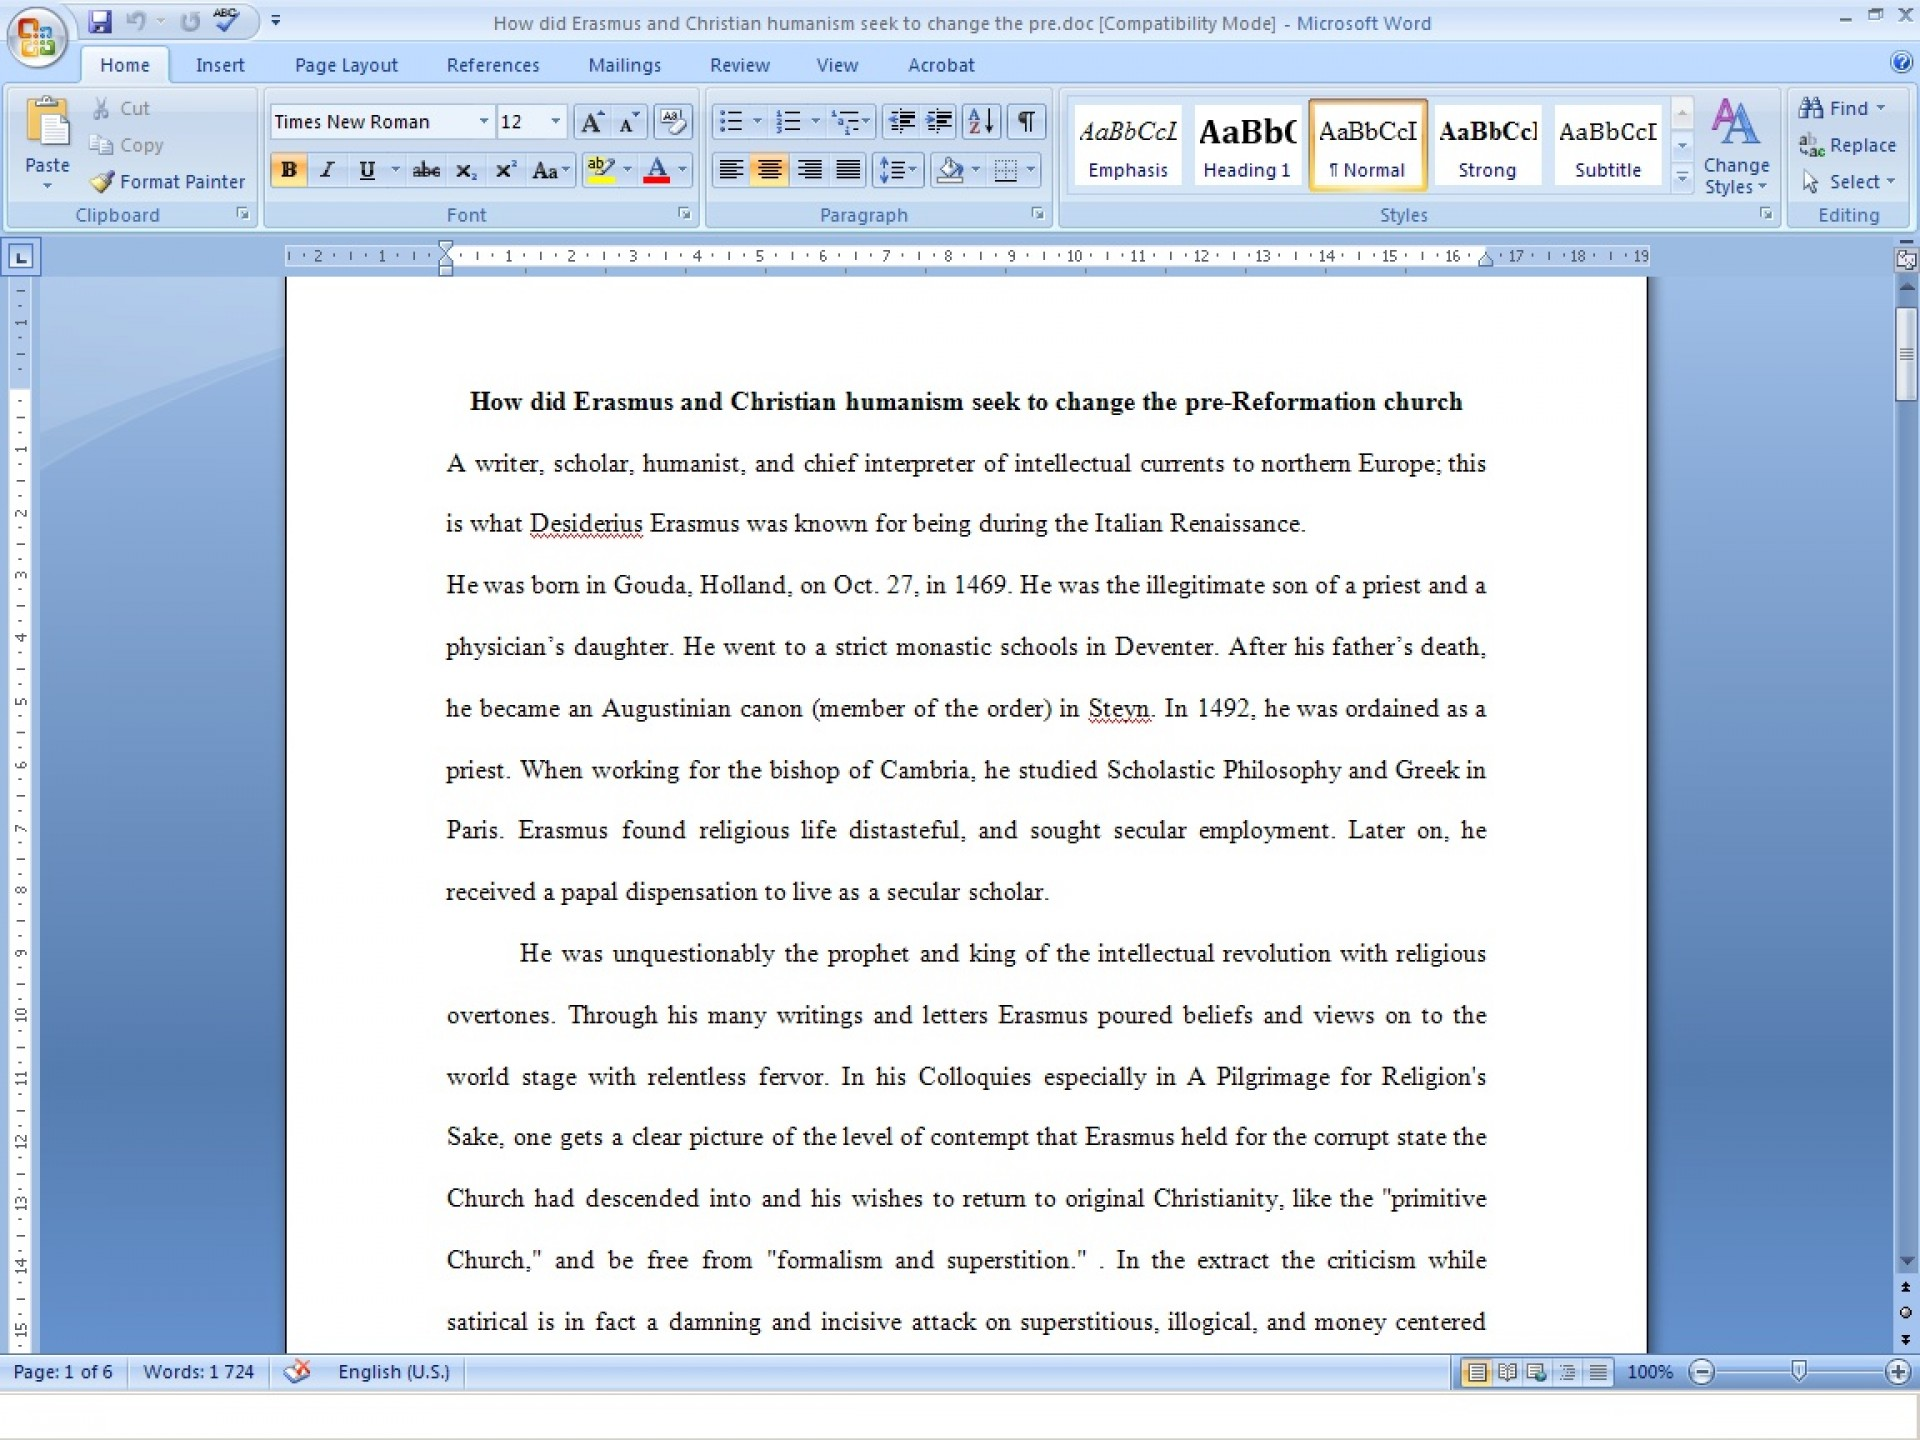 011 Custom Essay Online Help To Write For Free Unbelievable A 1920